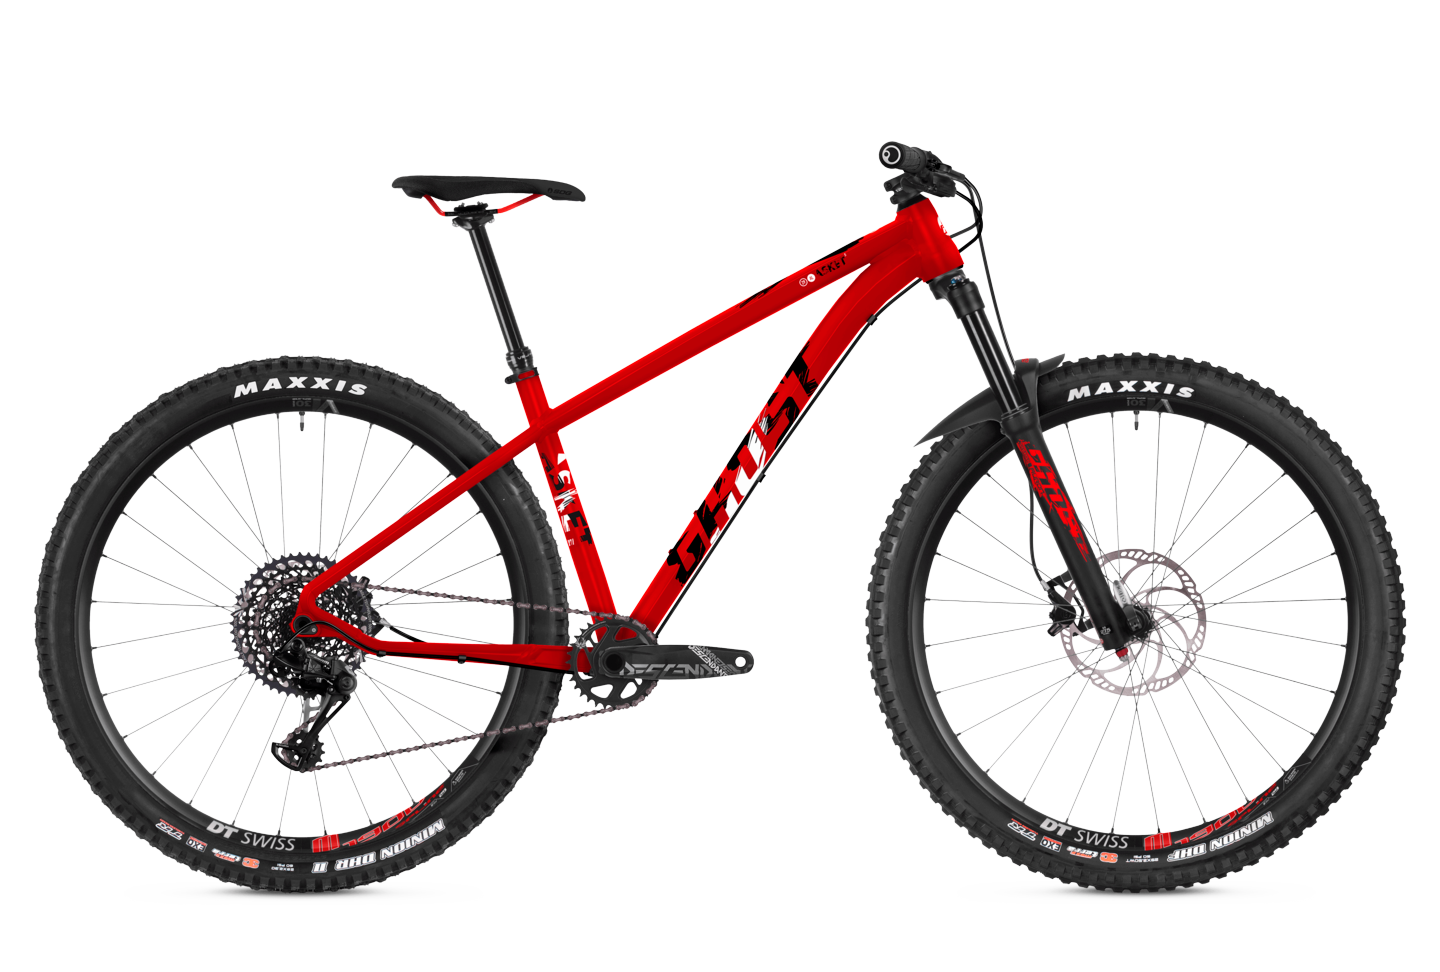 Bicicleta Ghost Asket 8.9 en Grip Bikes